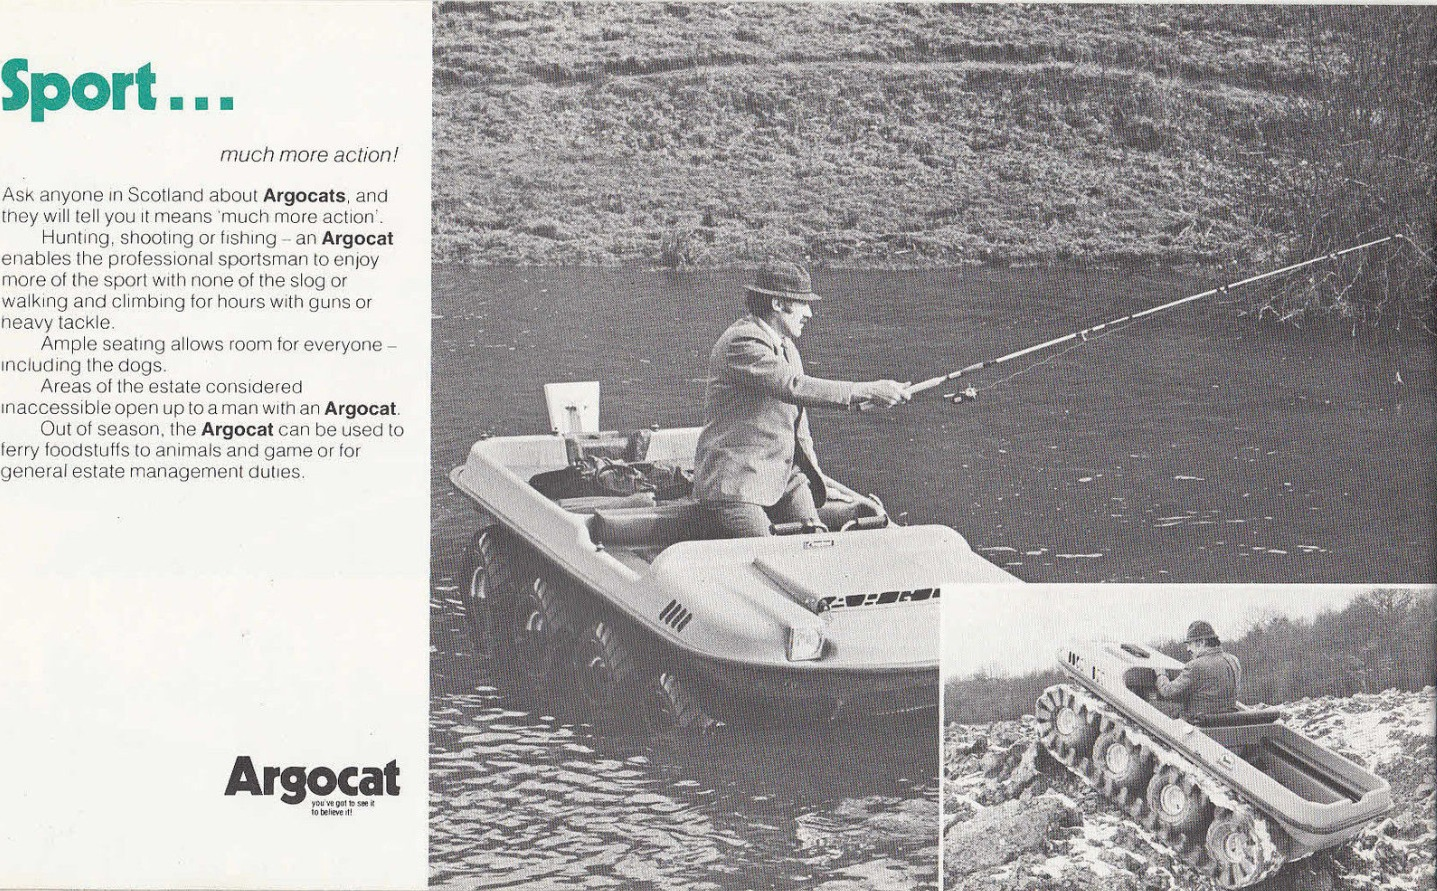 Argocat all terrain vehicle advertisement